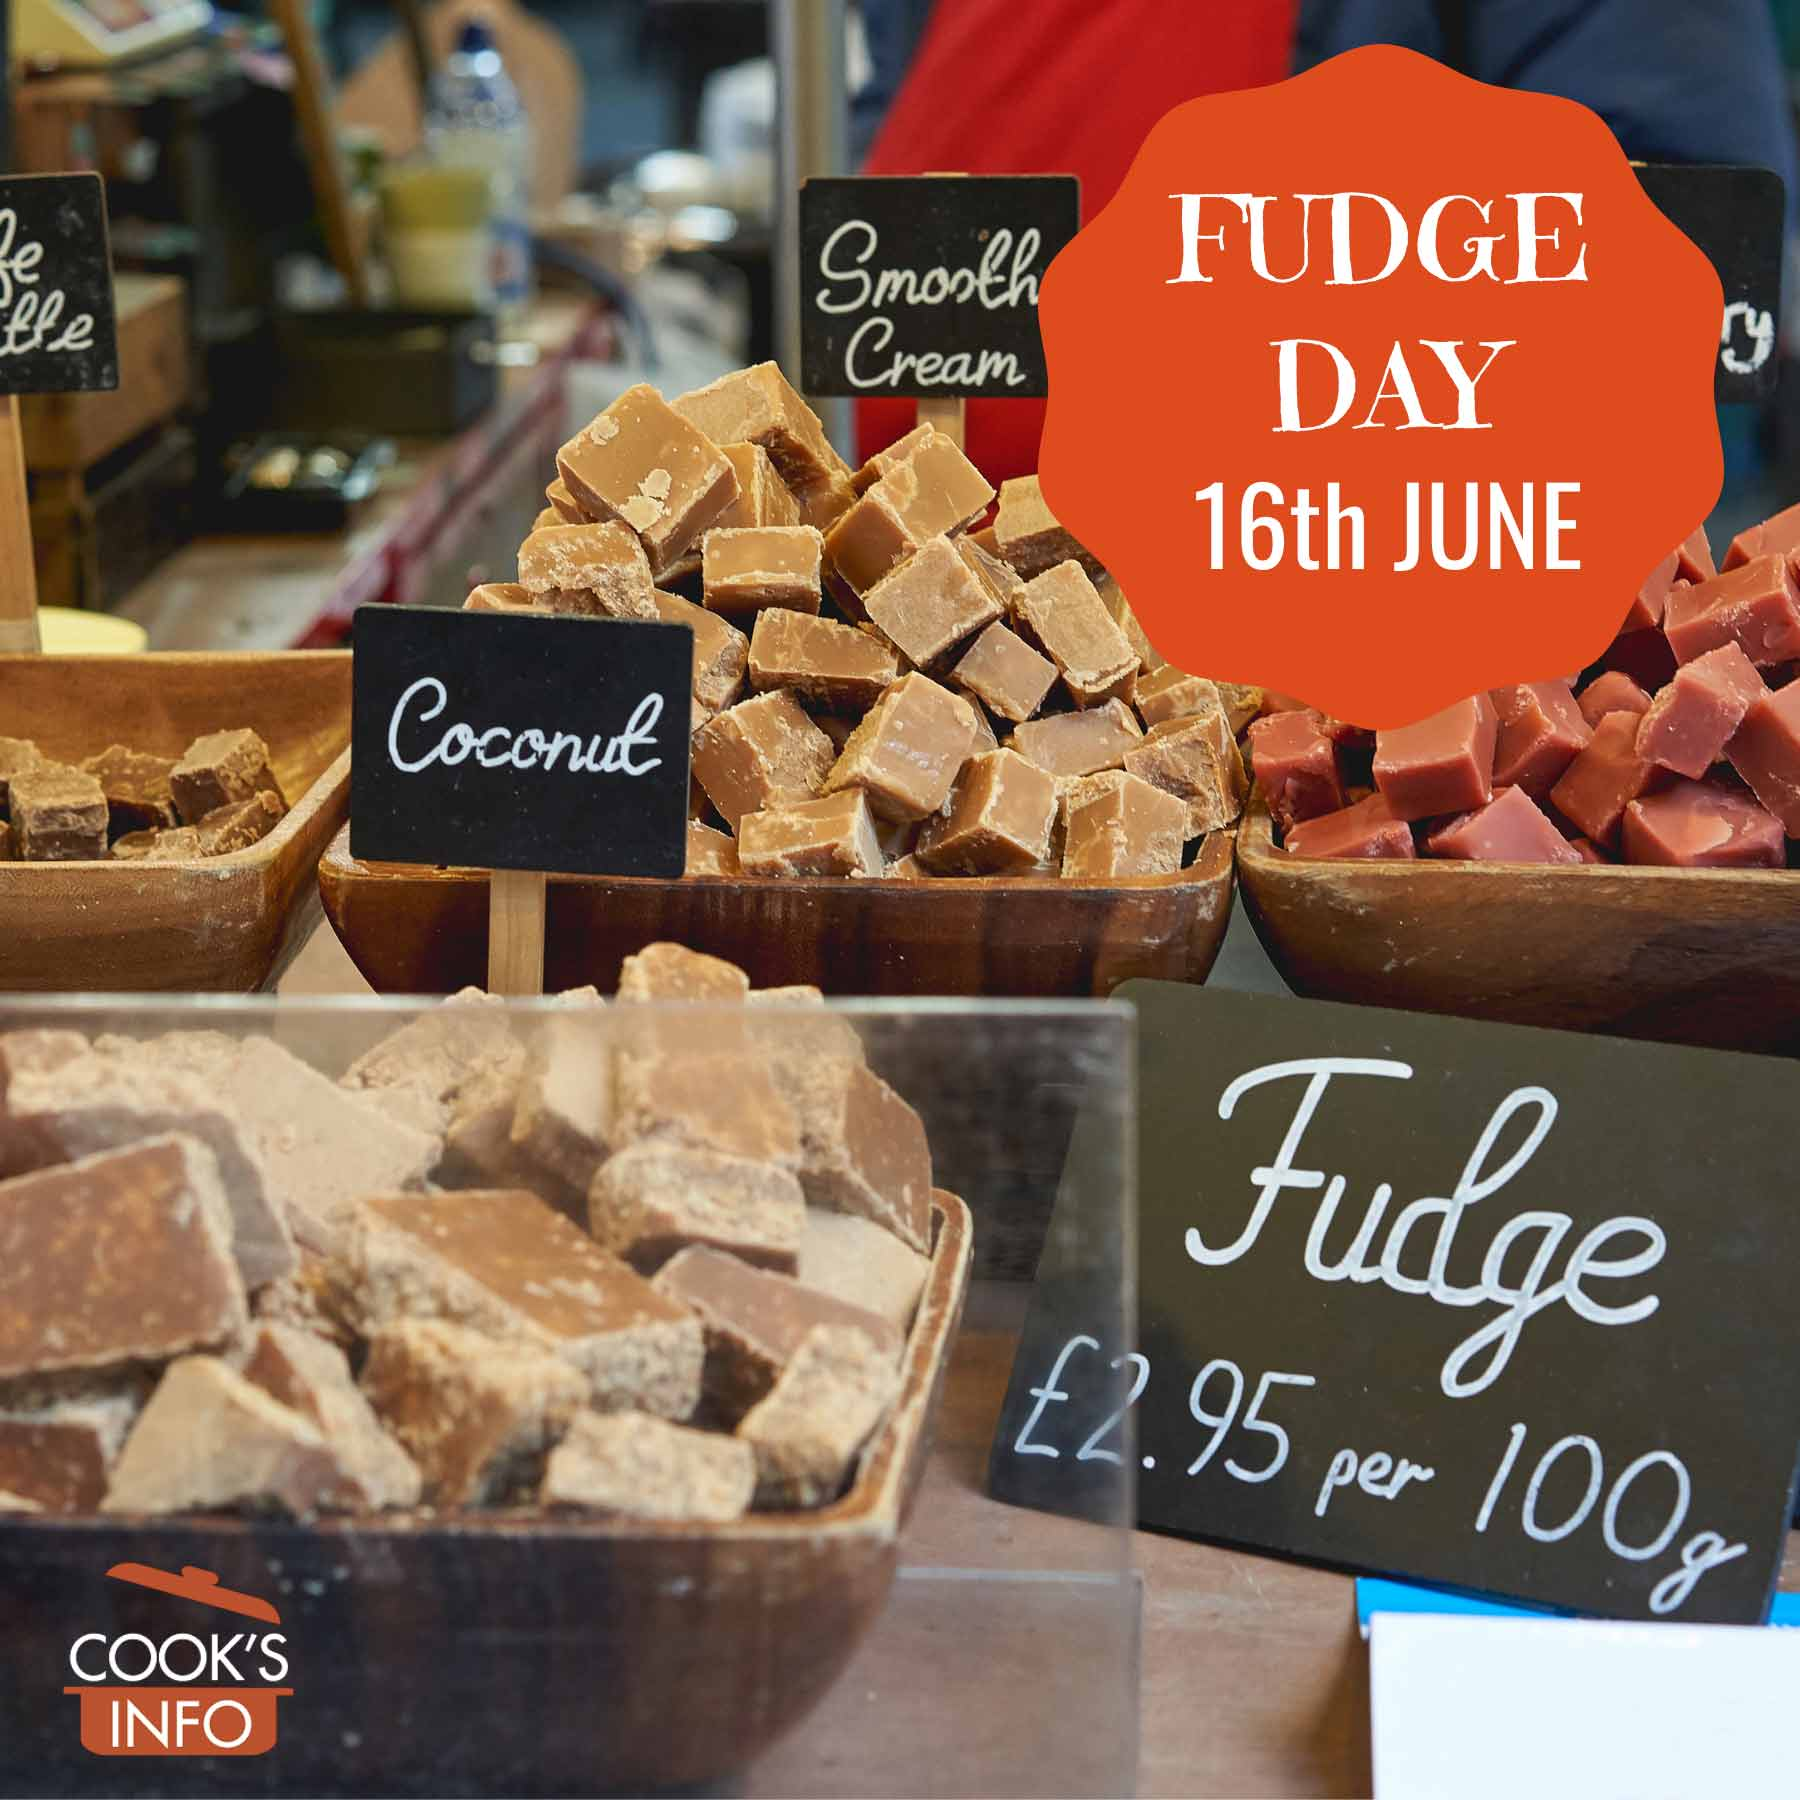 Various flavours of fudge on sale in a stall at Borough Market, London, England